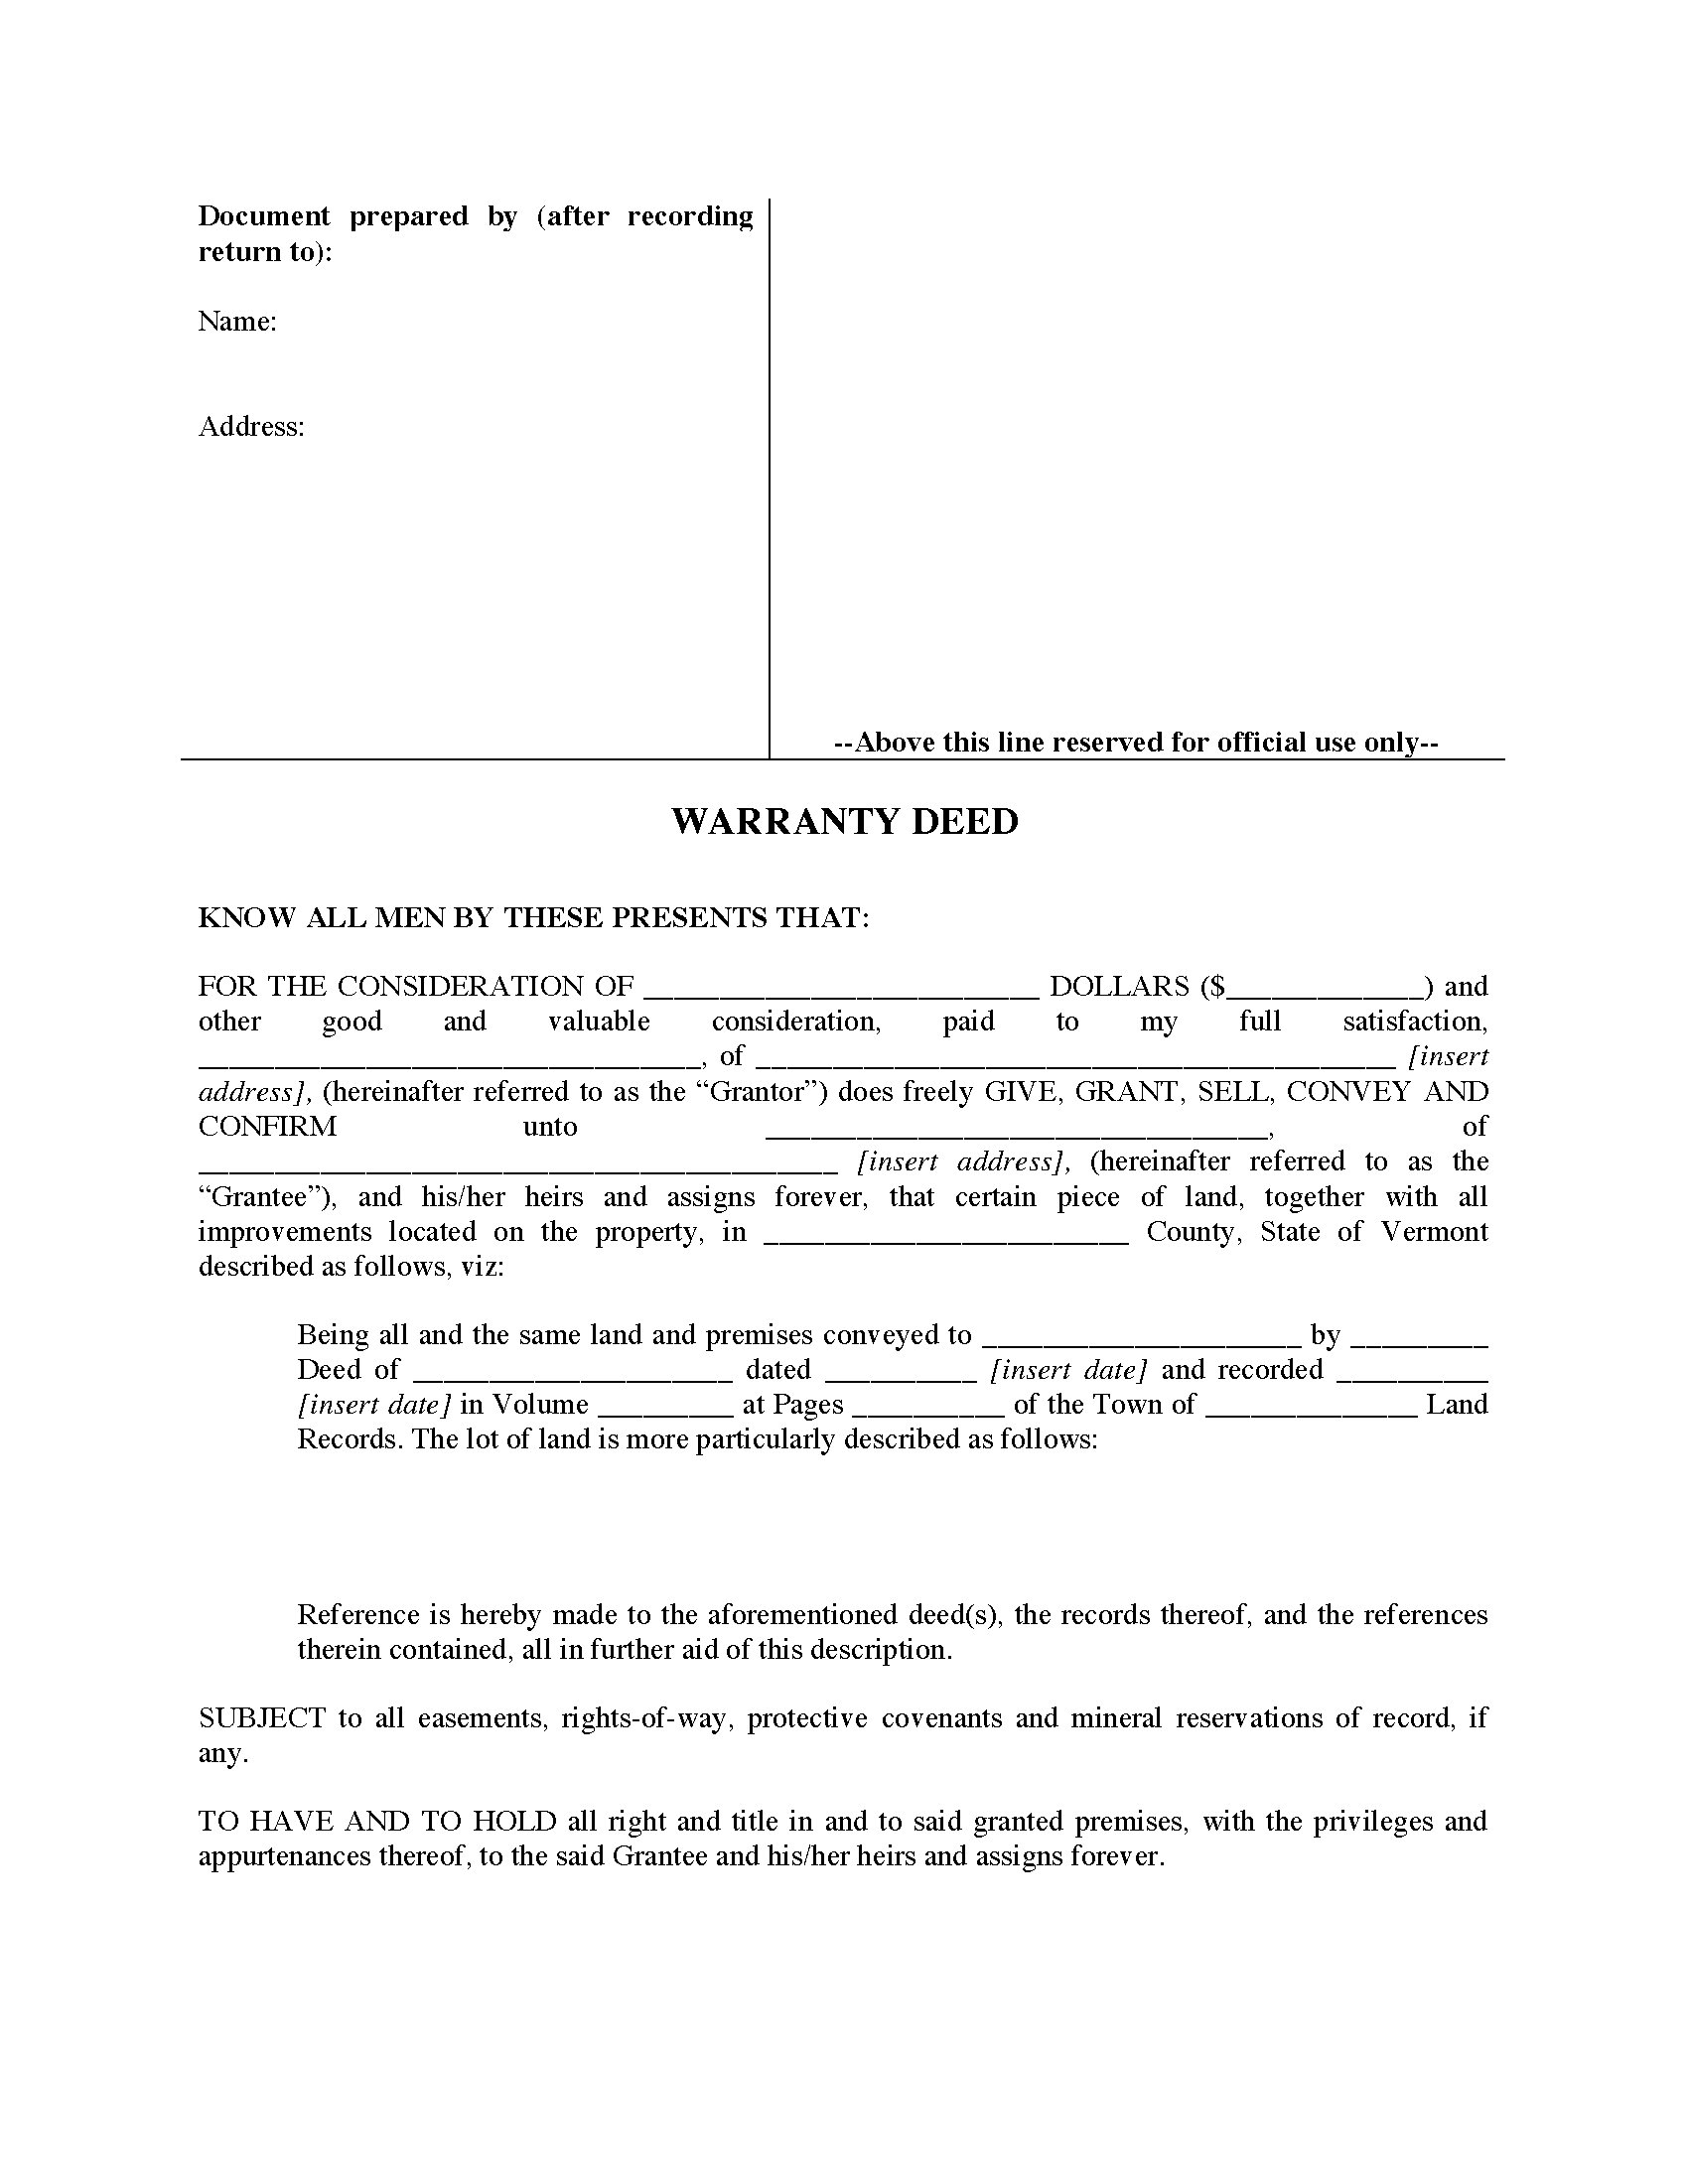 property warranty deed form pike productoseb co